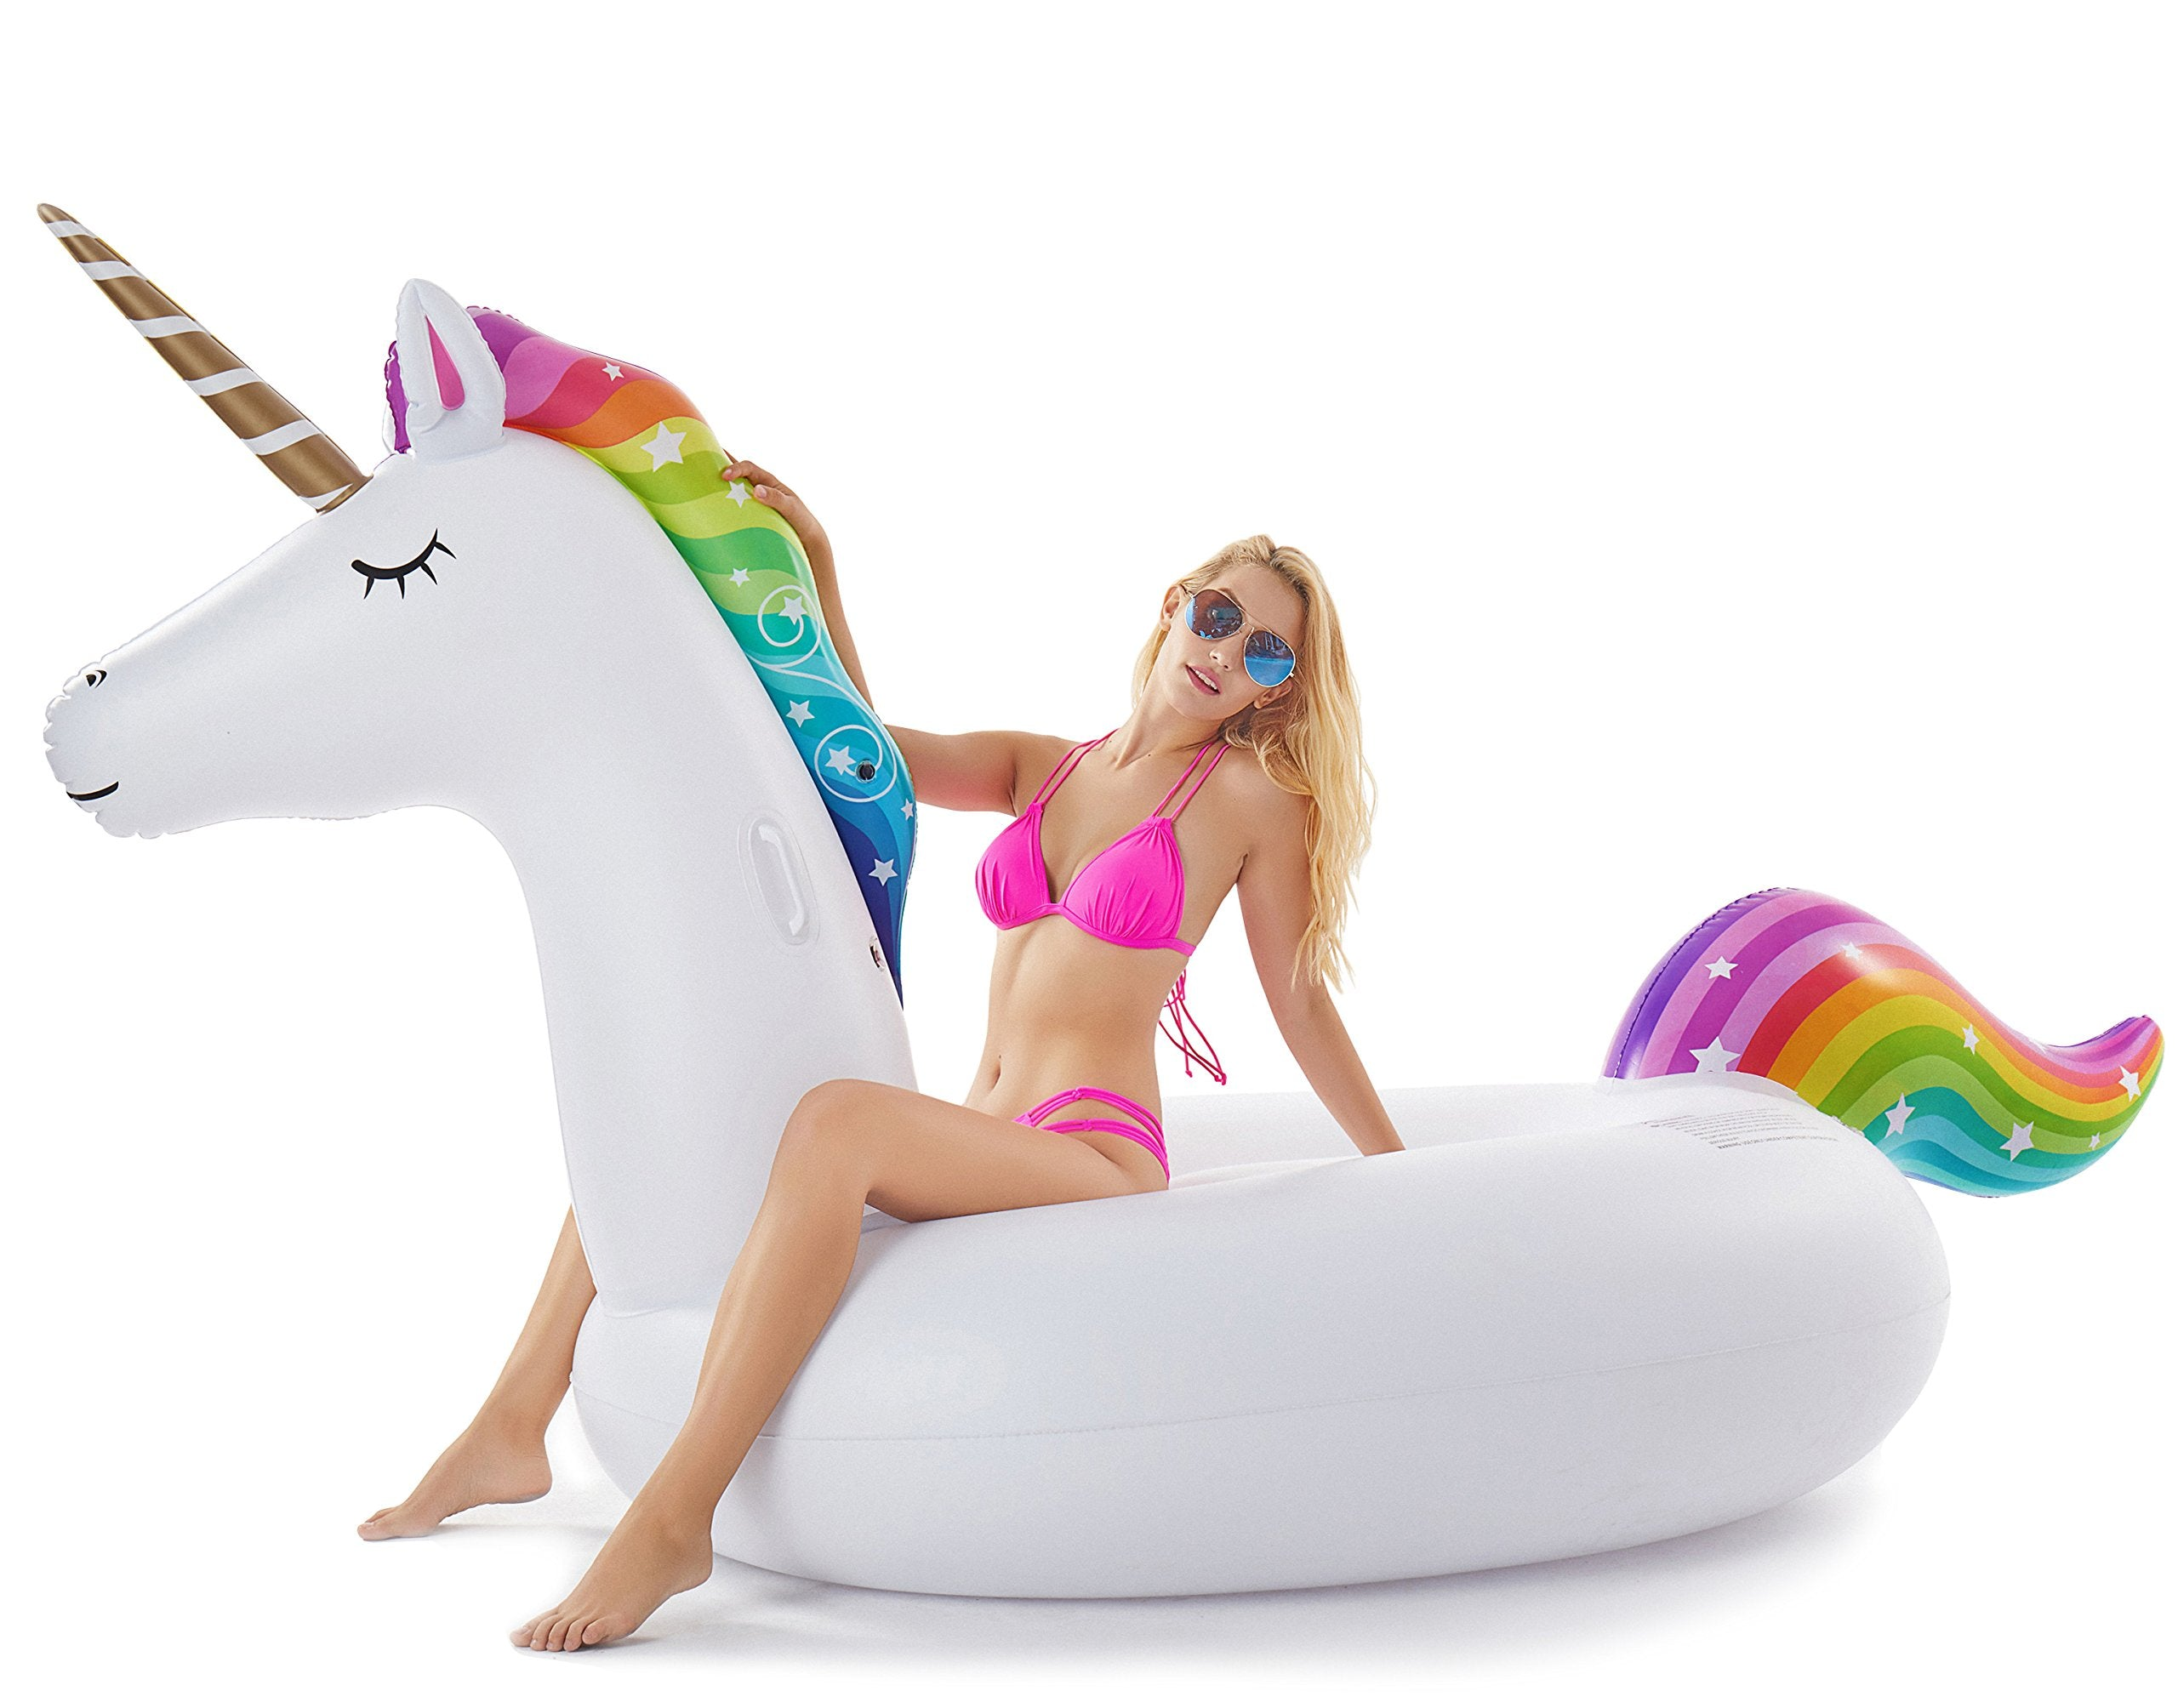 Surprising Jasonwell Giant Inflatable Unicorn Pool Float Floatie Ride On With Rapid Valves Large Rideable Blow Up Summer Beach Swimming Pool Party Lounge Raft Lamtechconsult Wood Chair Design Ideas Lamtechconsultcom